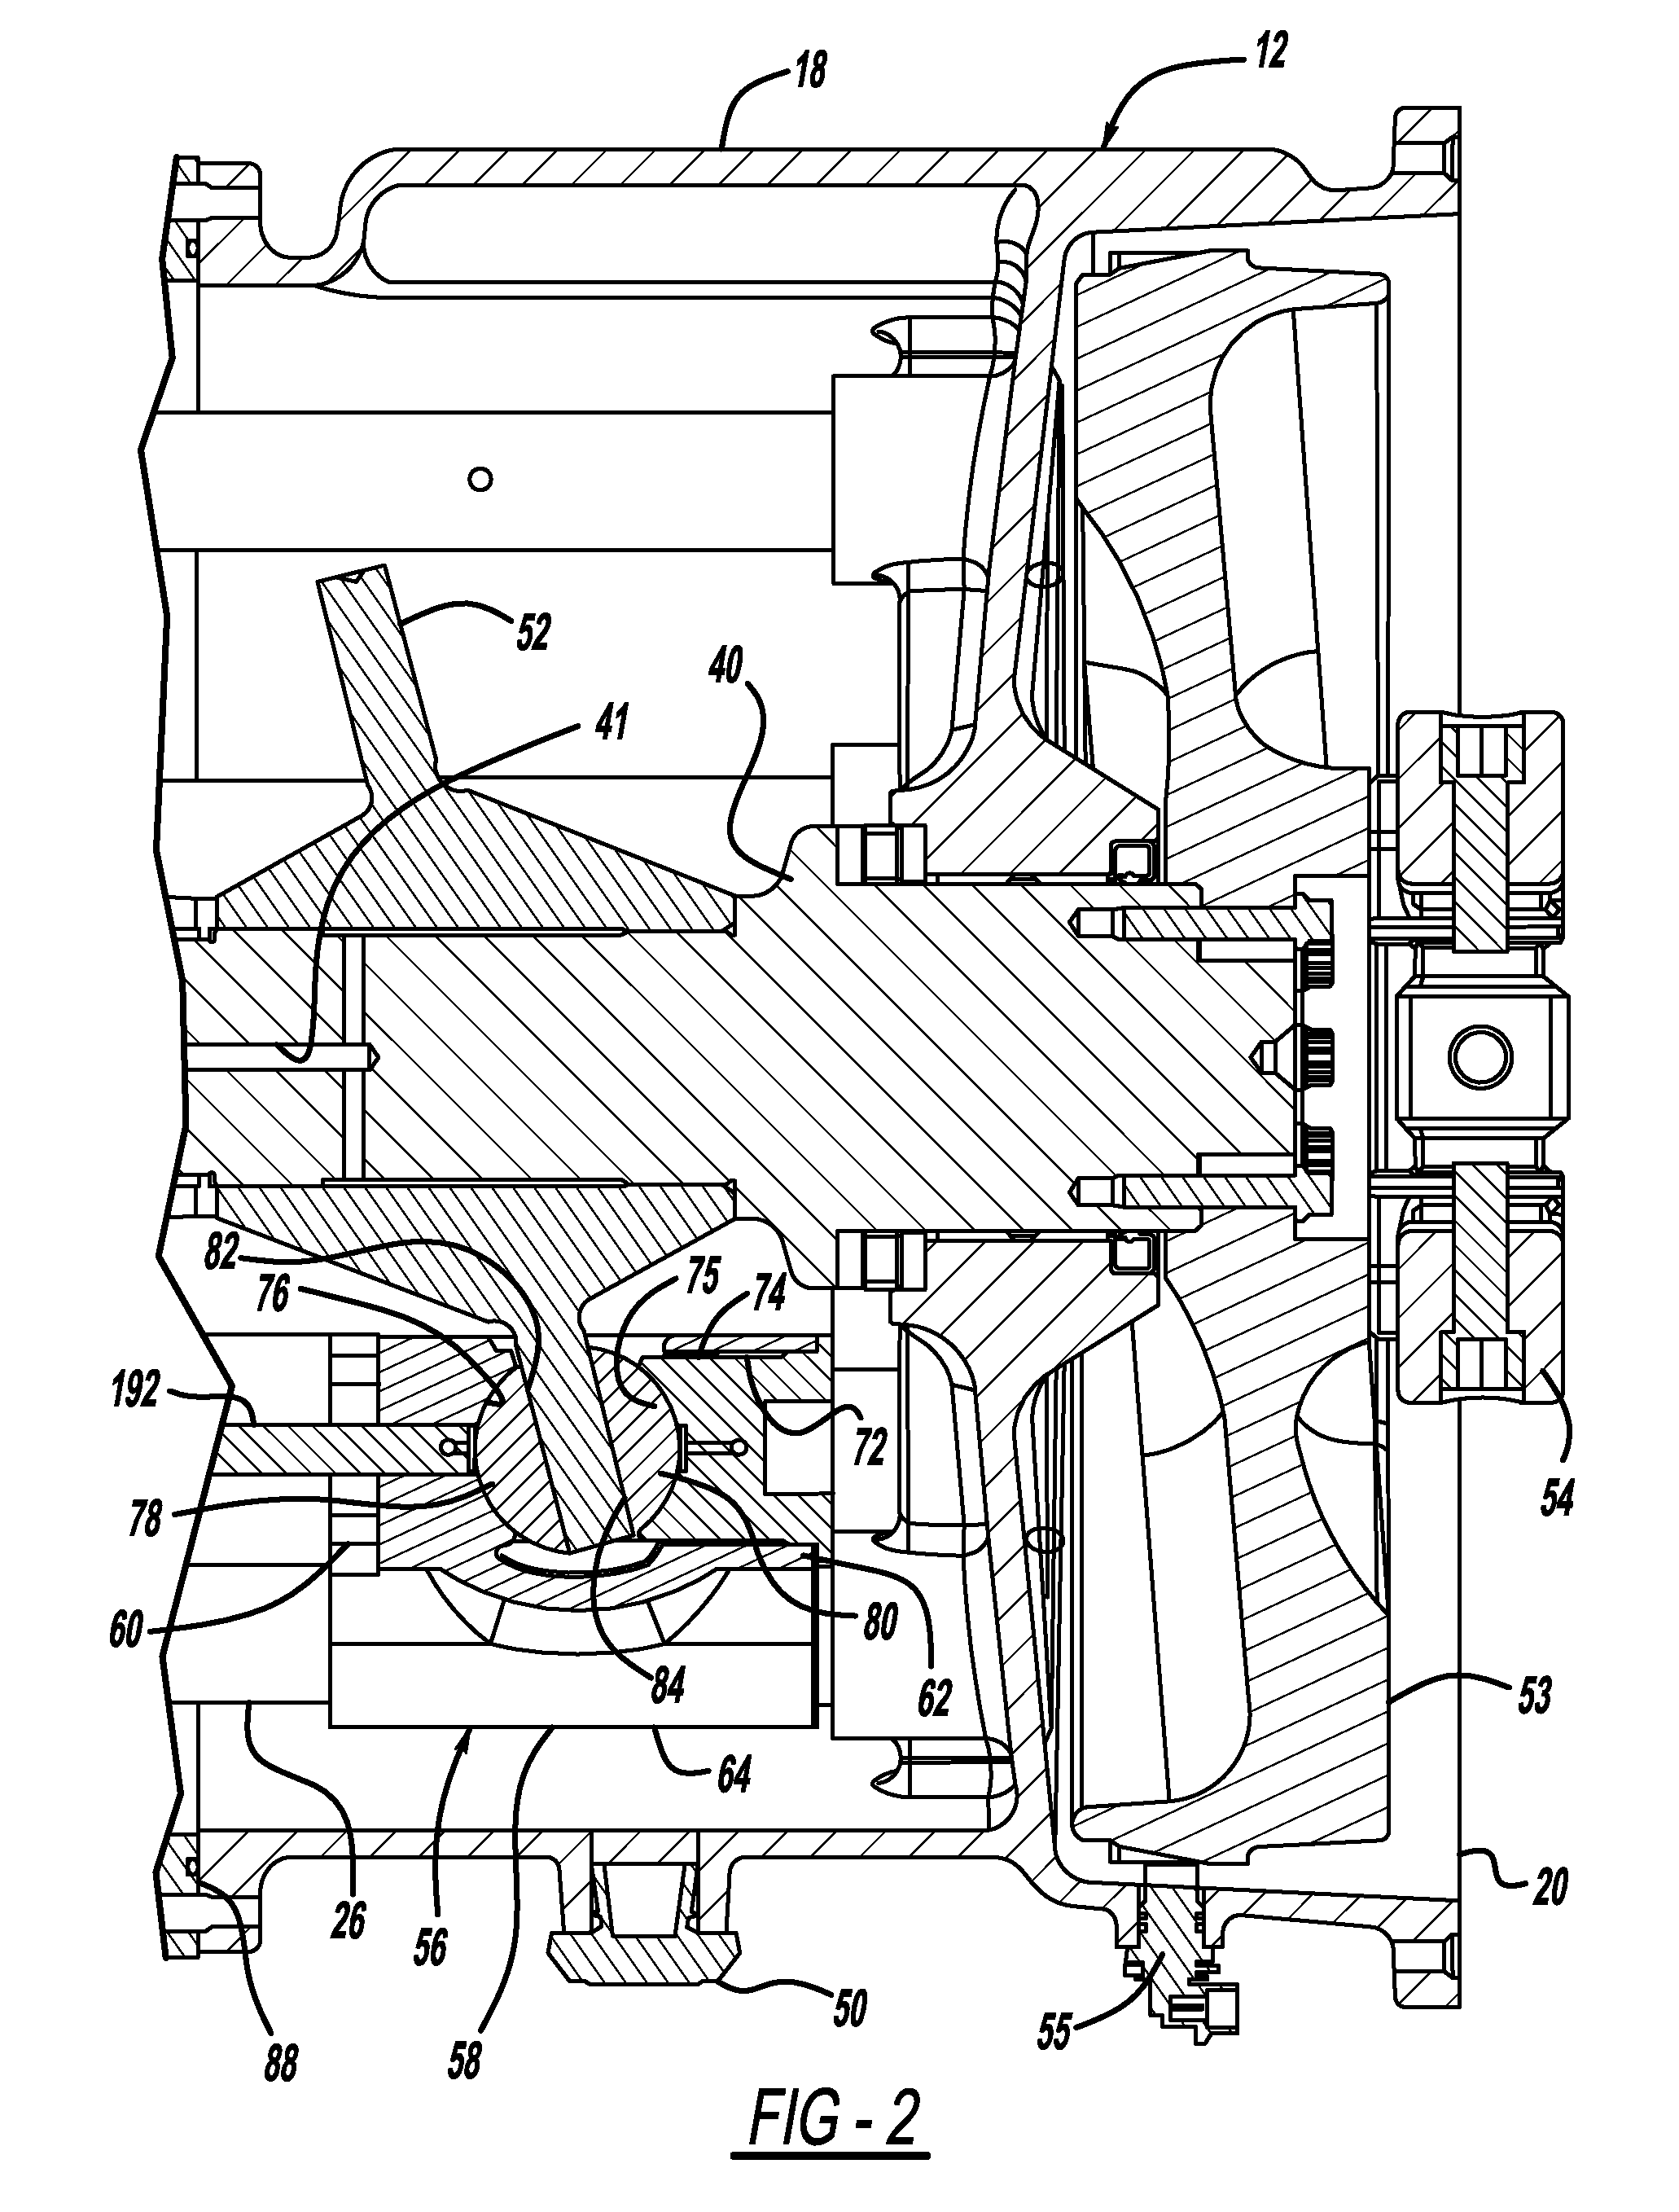 hight resolution of pressure equalization system for a stirling engine us 8601809 b2 patent drawing